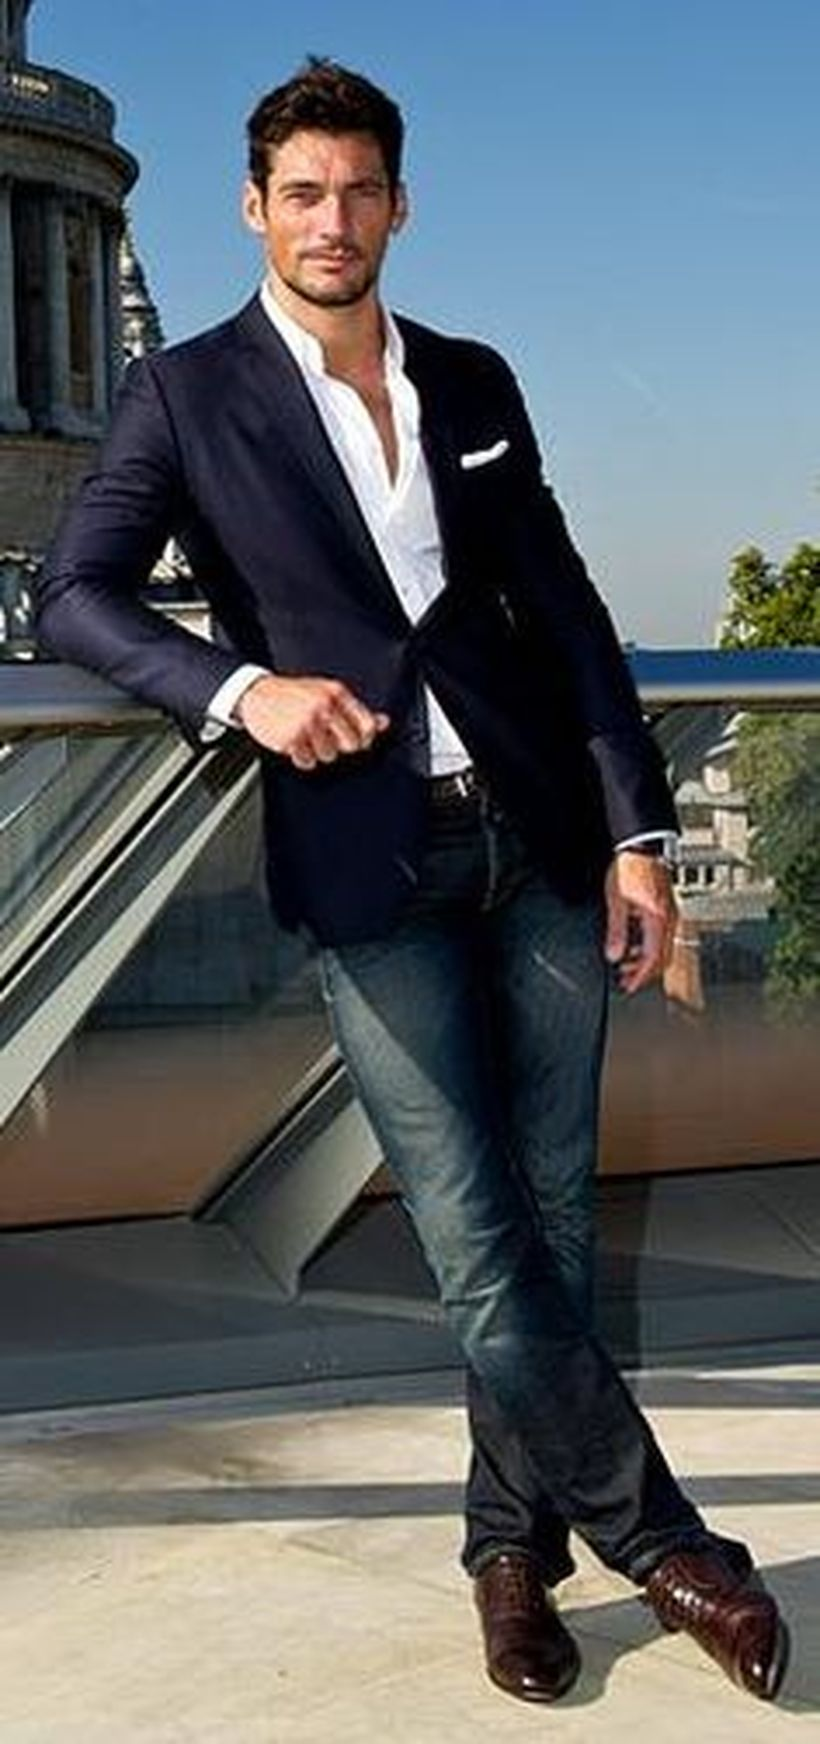 Stylish men's jeans outfits ideas in 2017 22